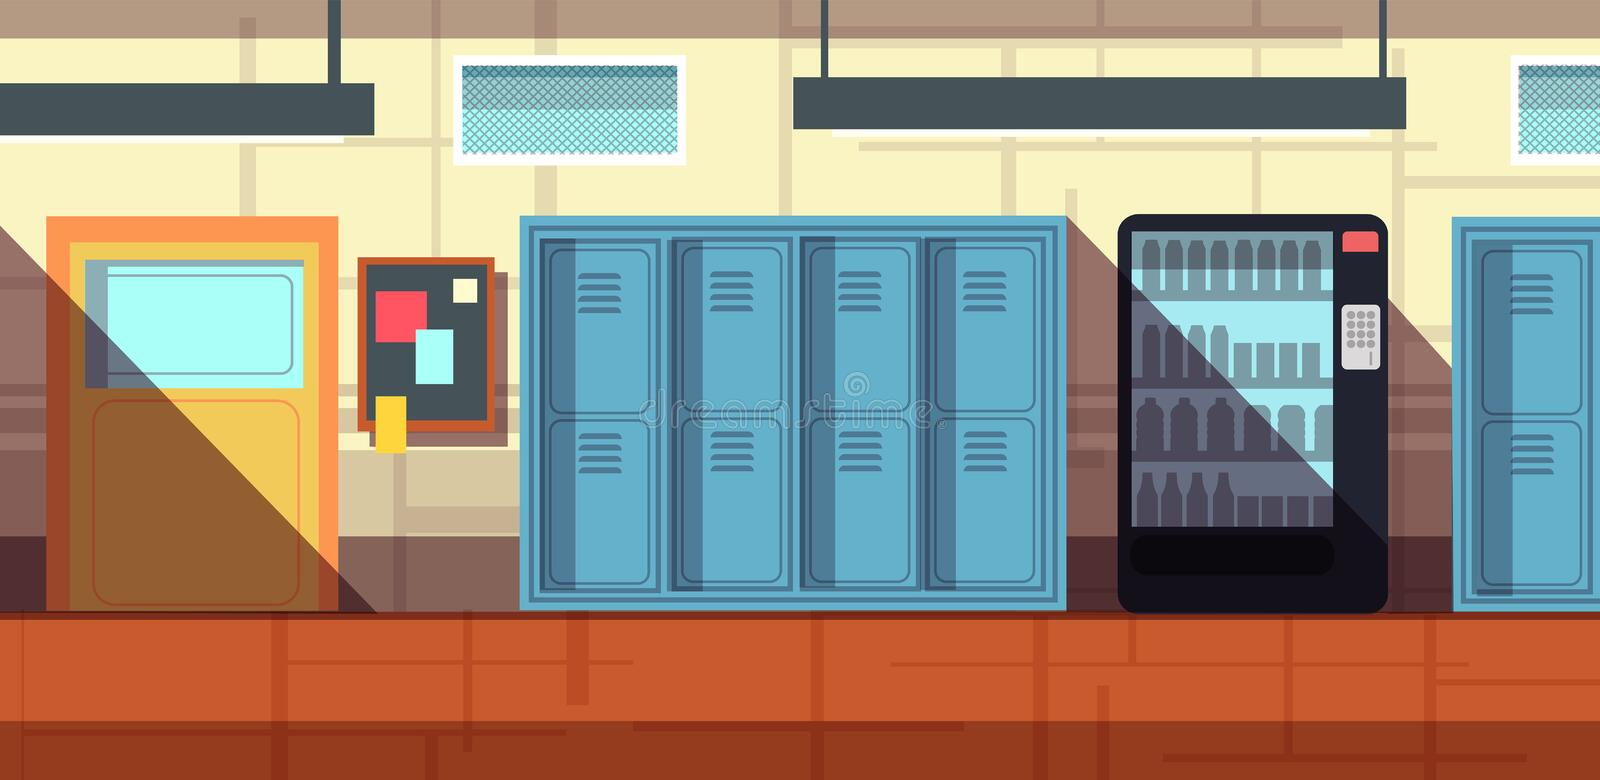 Nobody school corridor interior cartoon vector illustration stock illustration